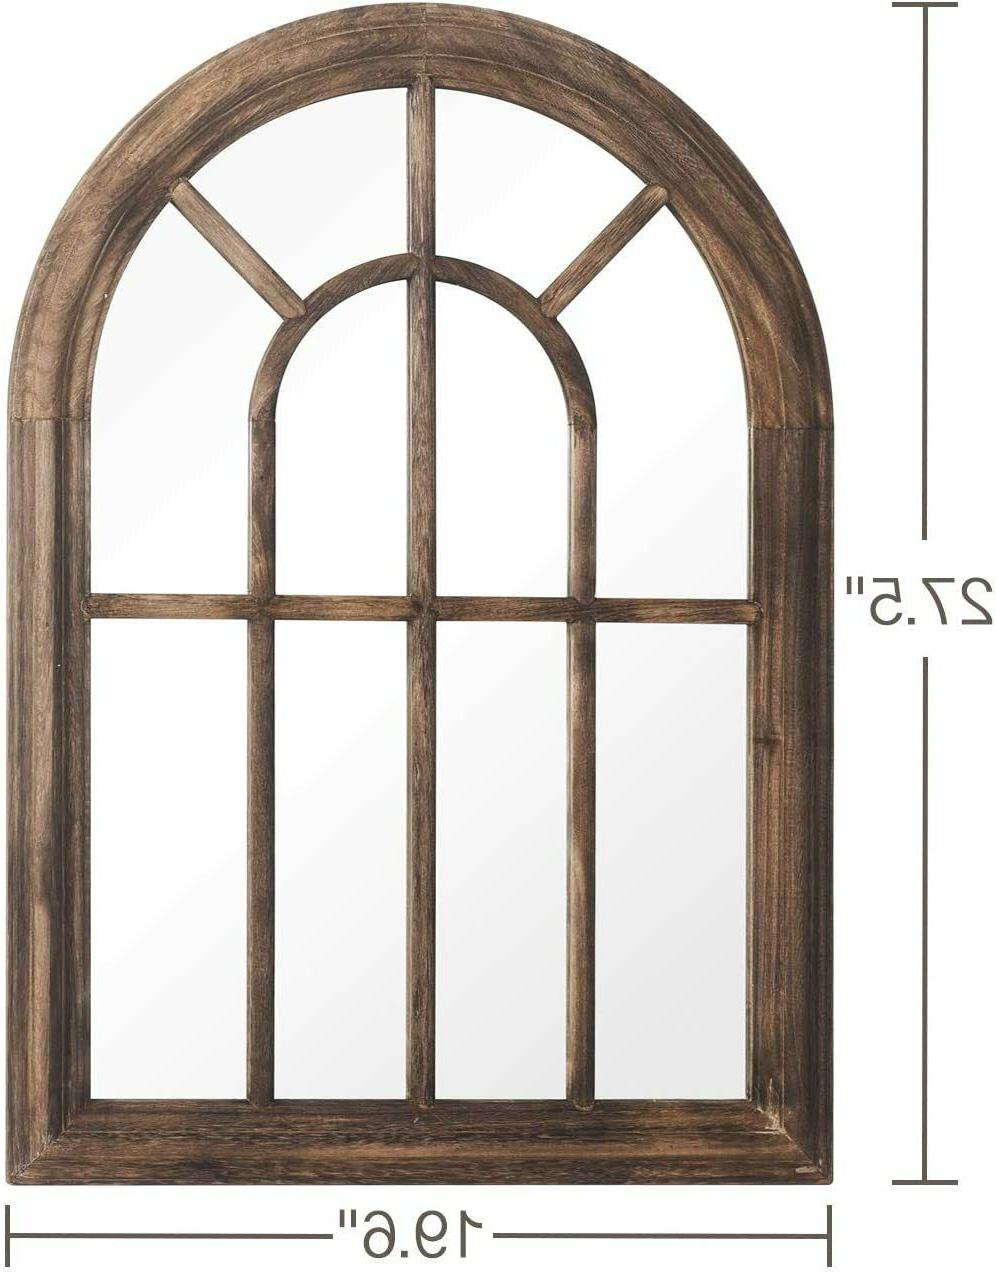 Fashion Torched Wall Hanging Mirror Wood Arched Home New